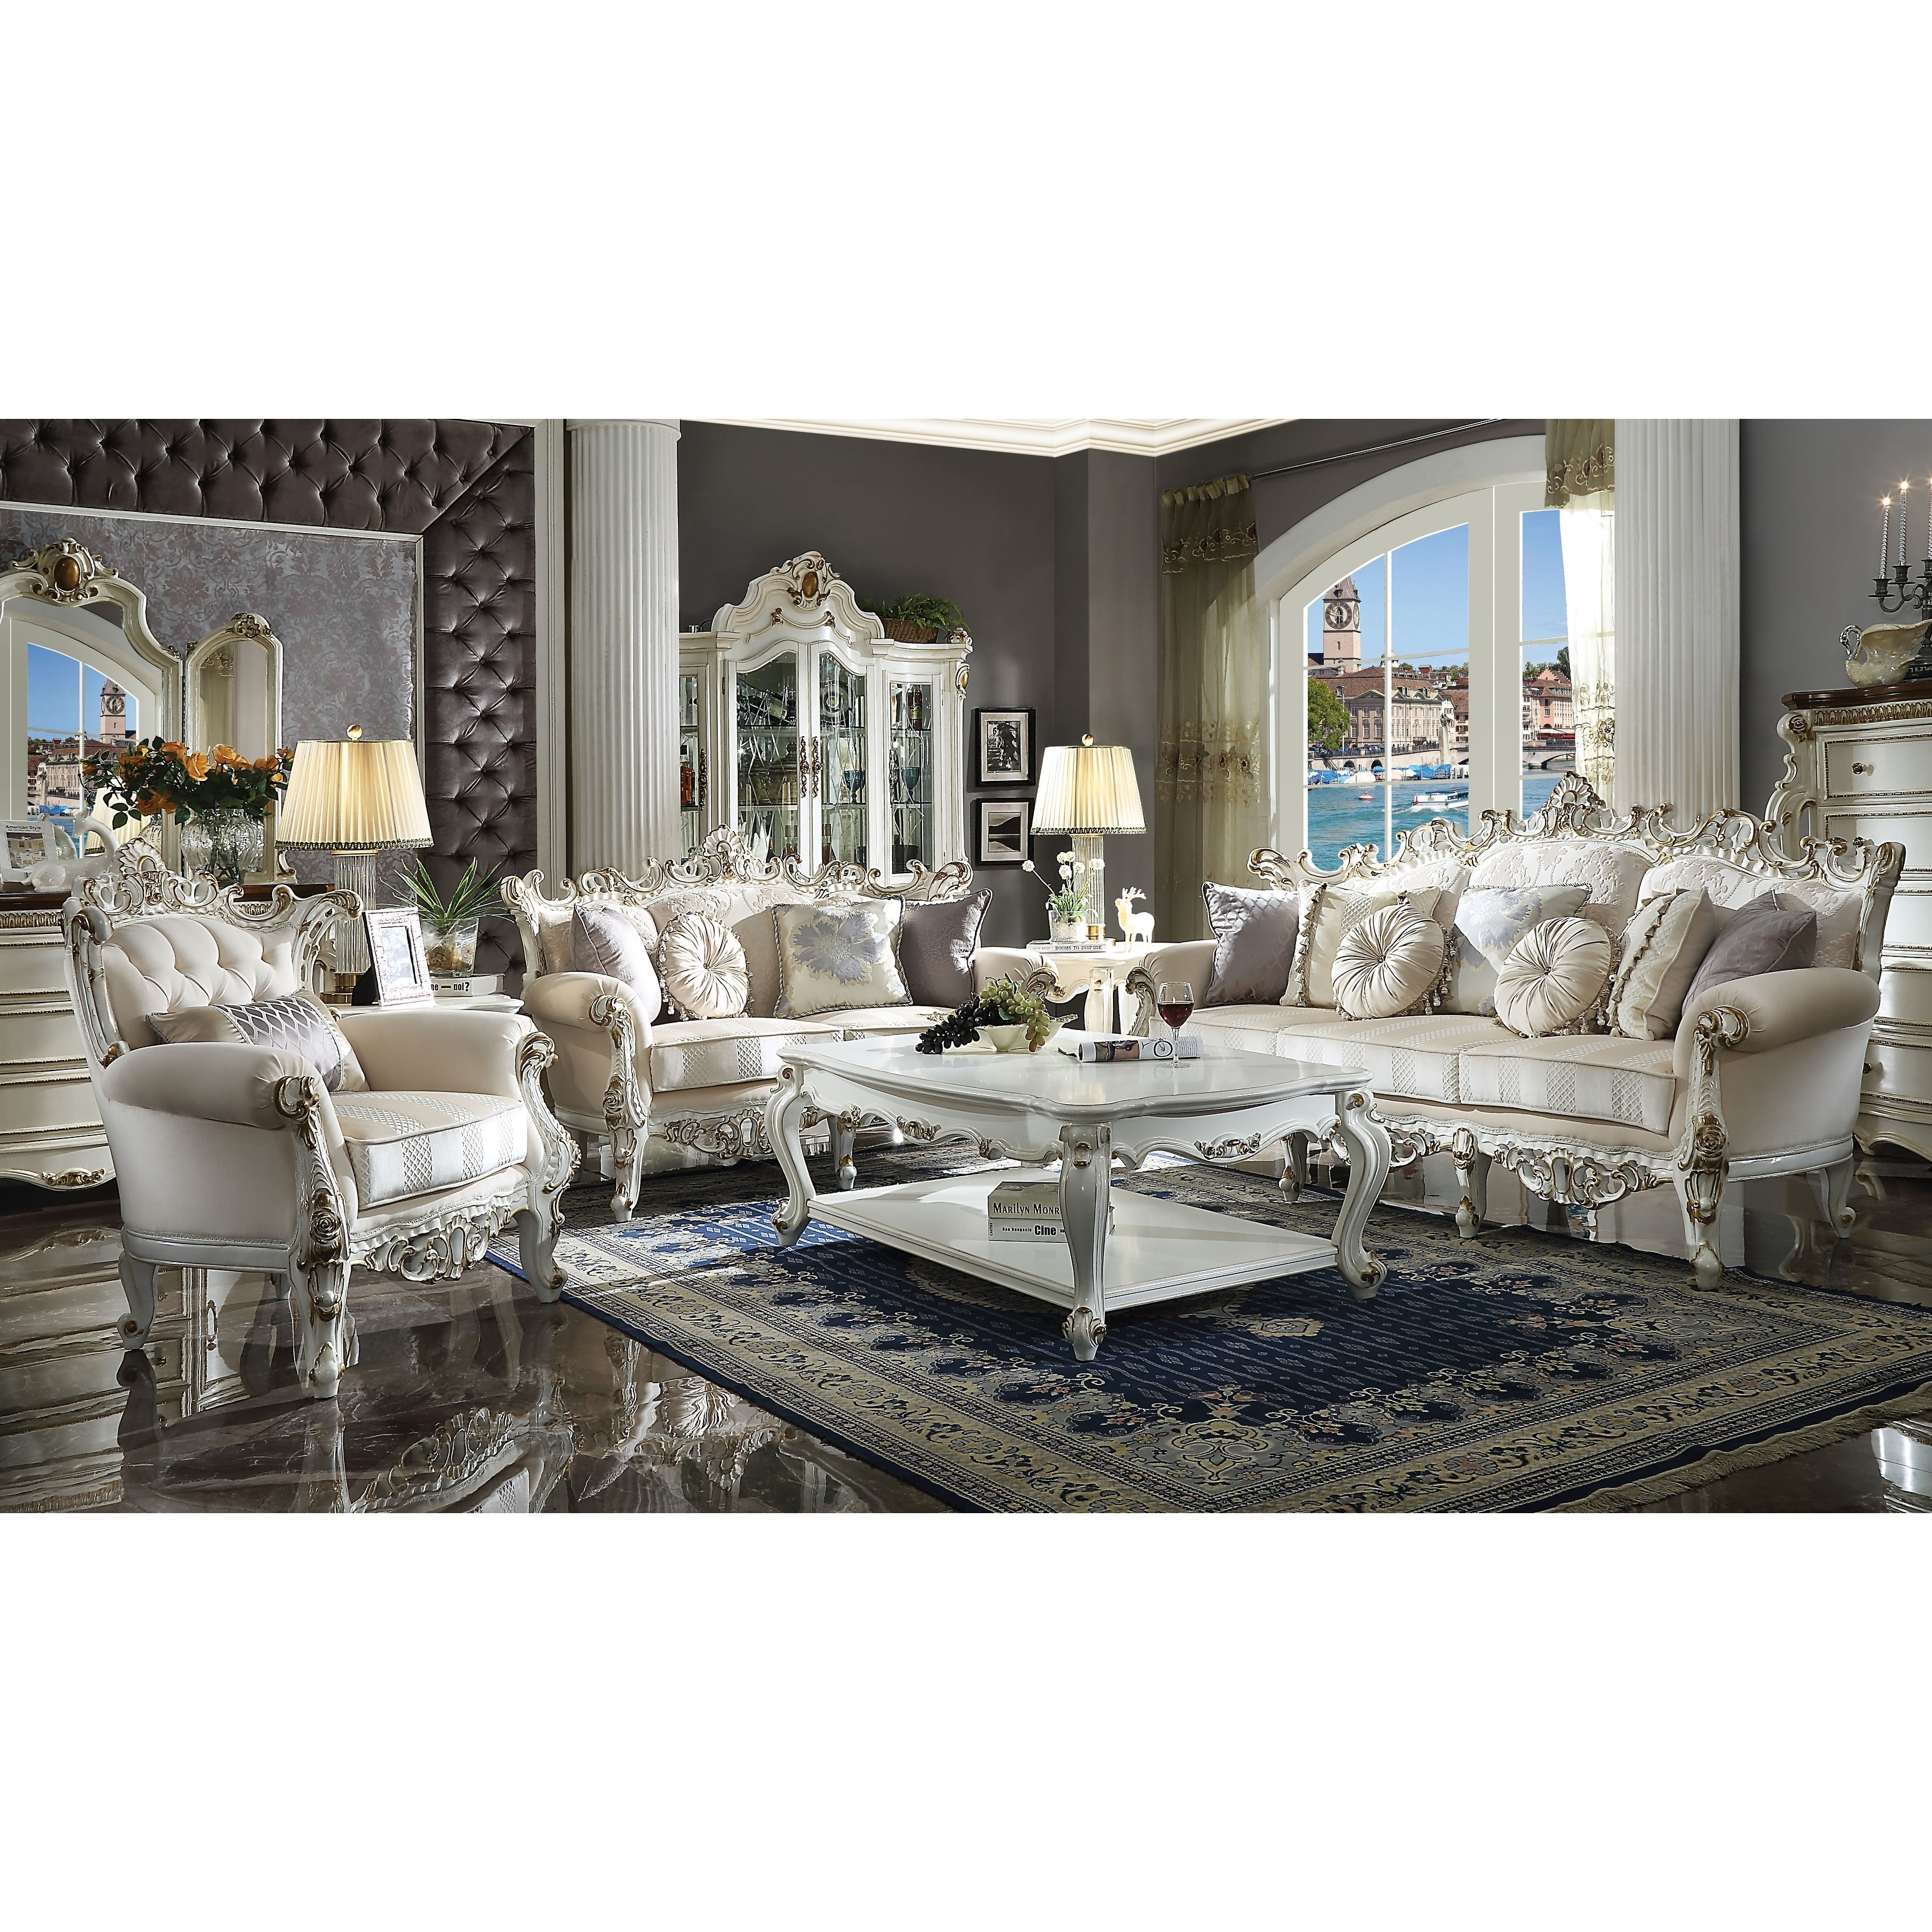 Shop Fabric Upholstered Wooden Sofa With Aesthetic Polyresin Carvings Antique White And Gold On Sale Overstock 28045789